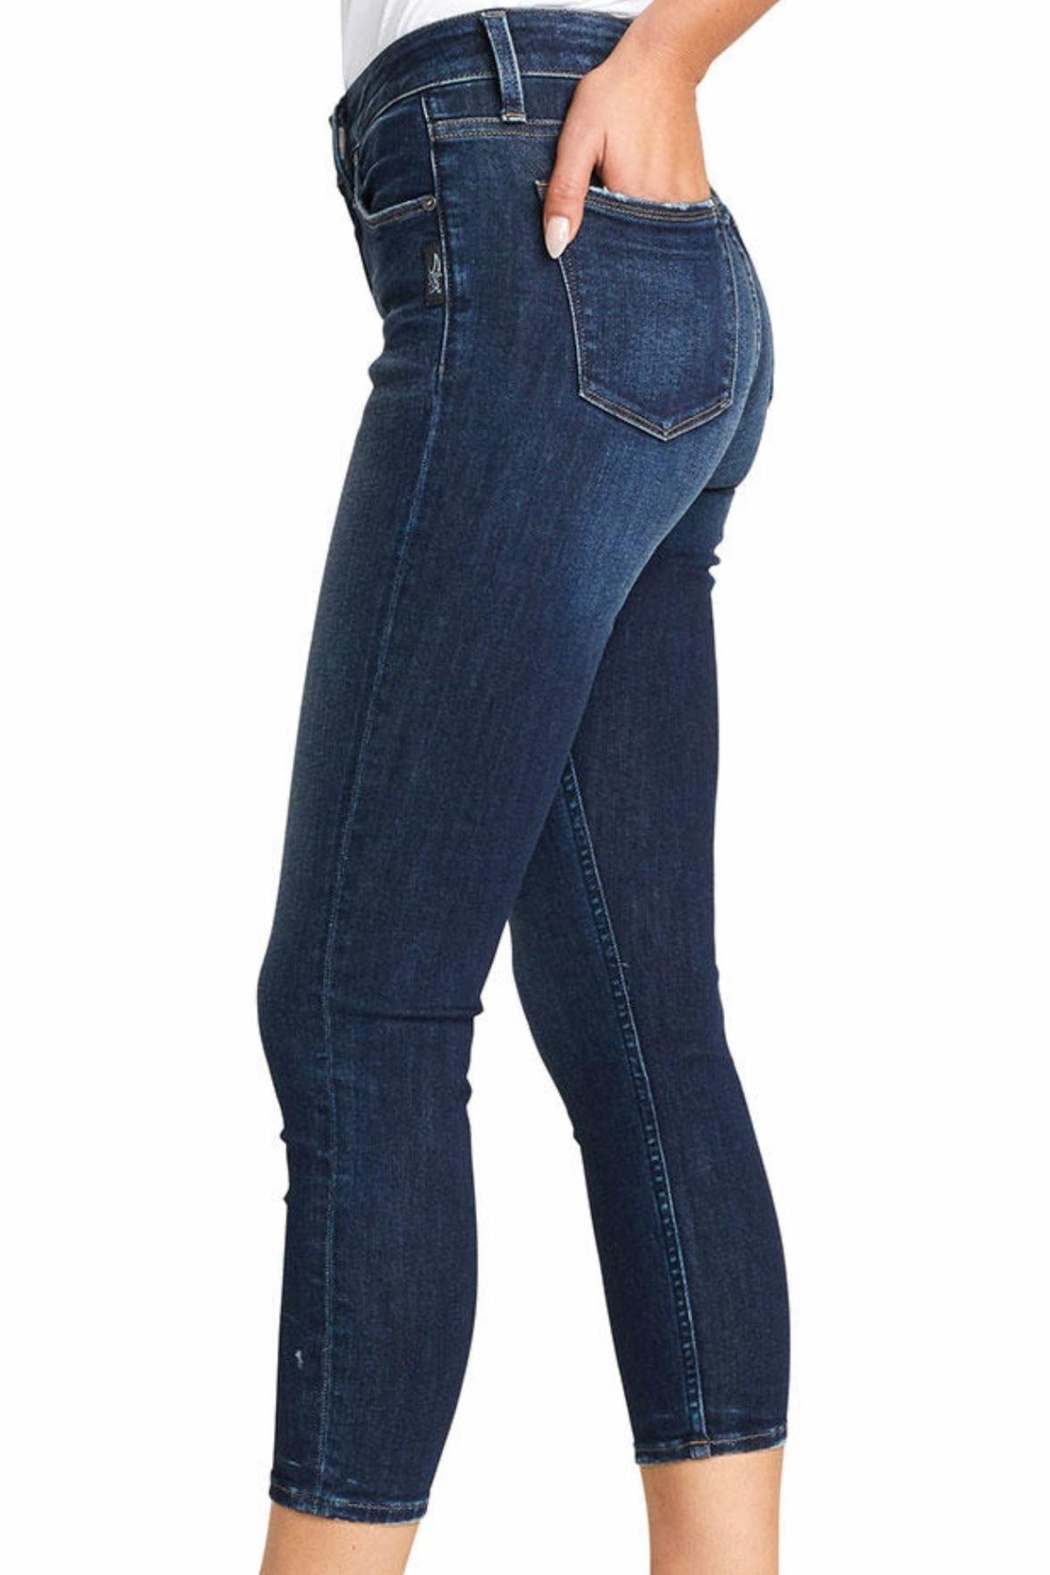 Silver Jeans Co. Avery Skinny Crop - Front Full Image